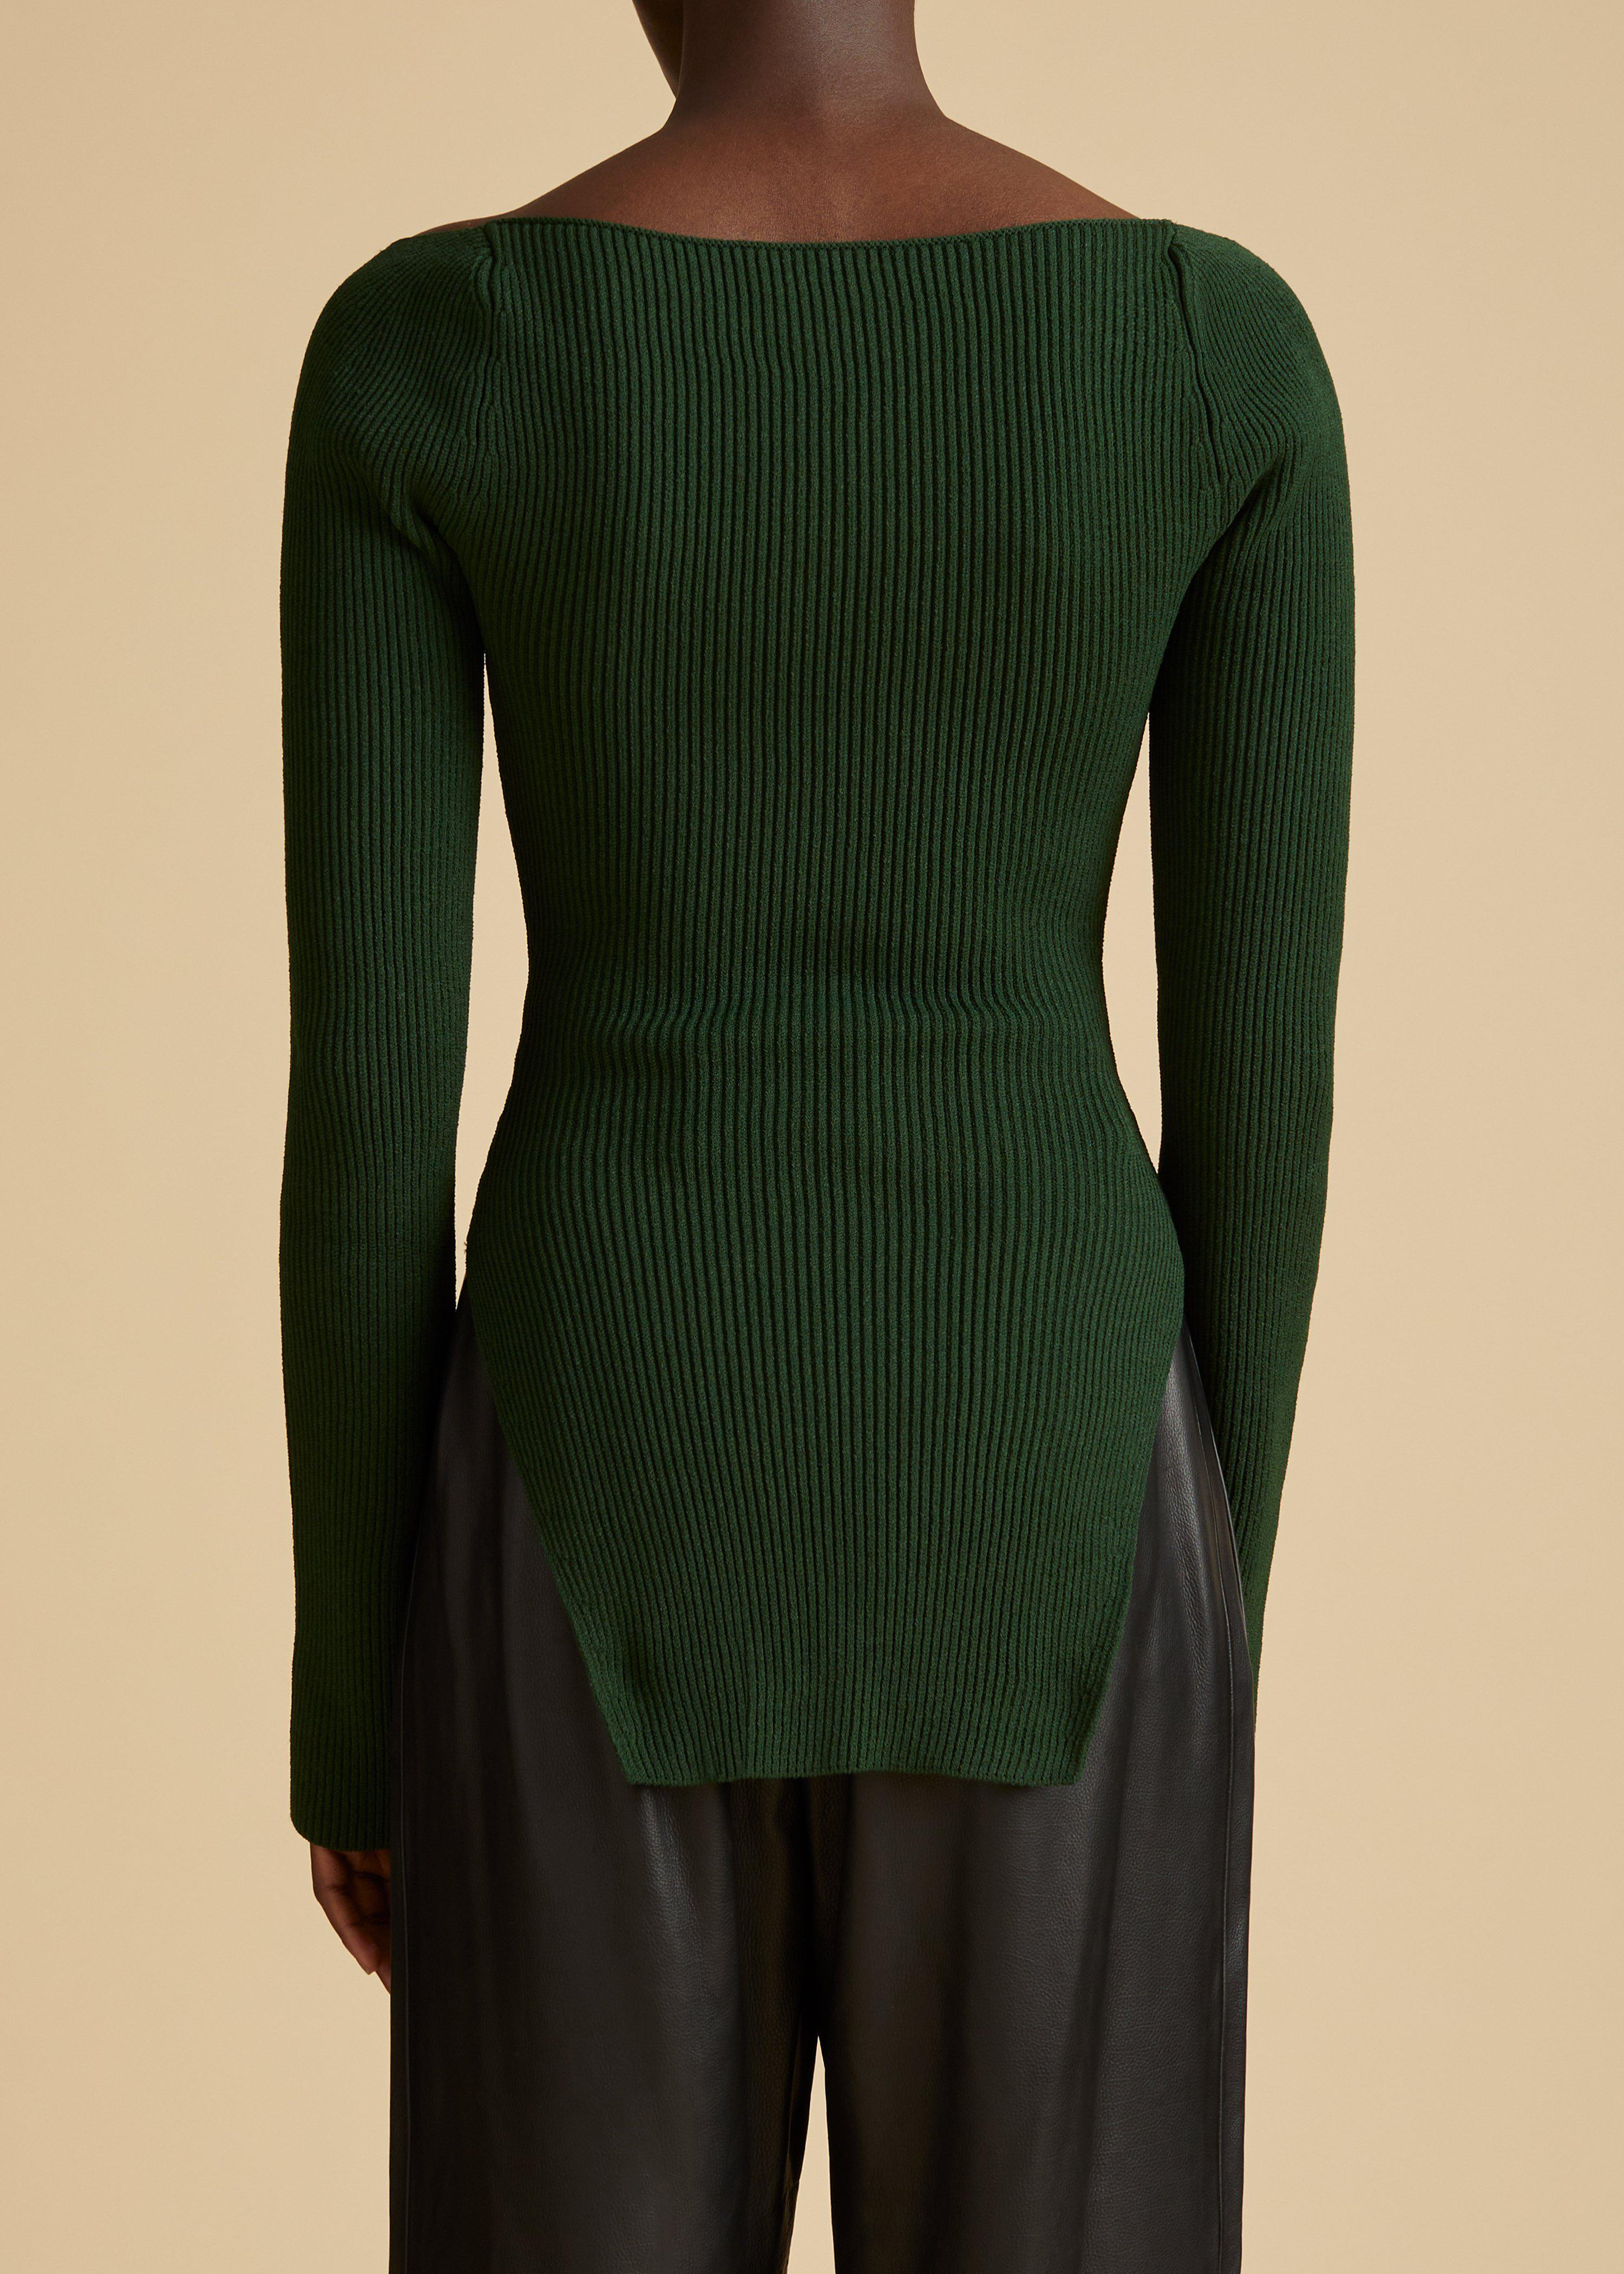 The Maddy Top in Deep Vert 2